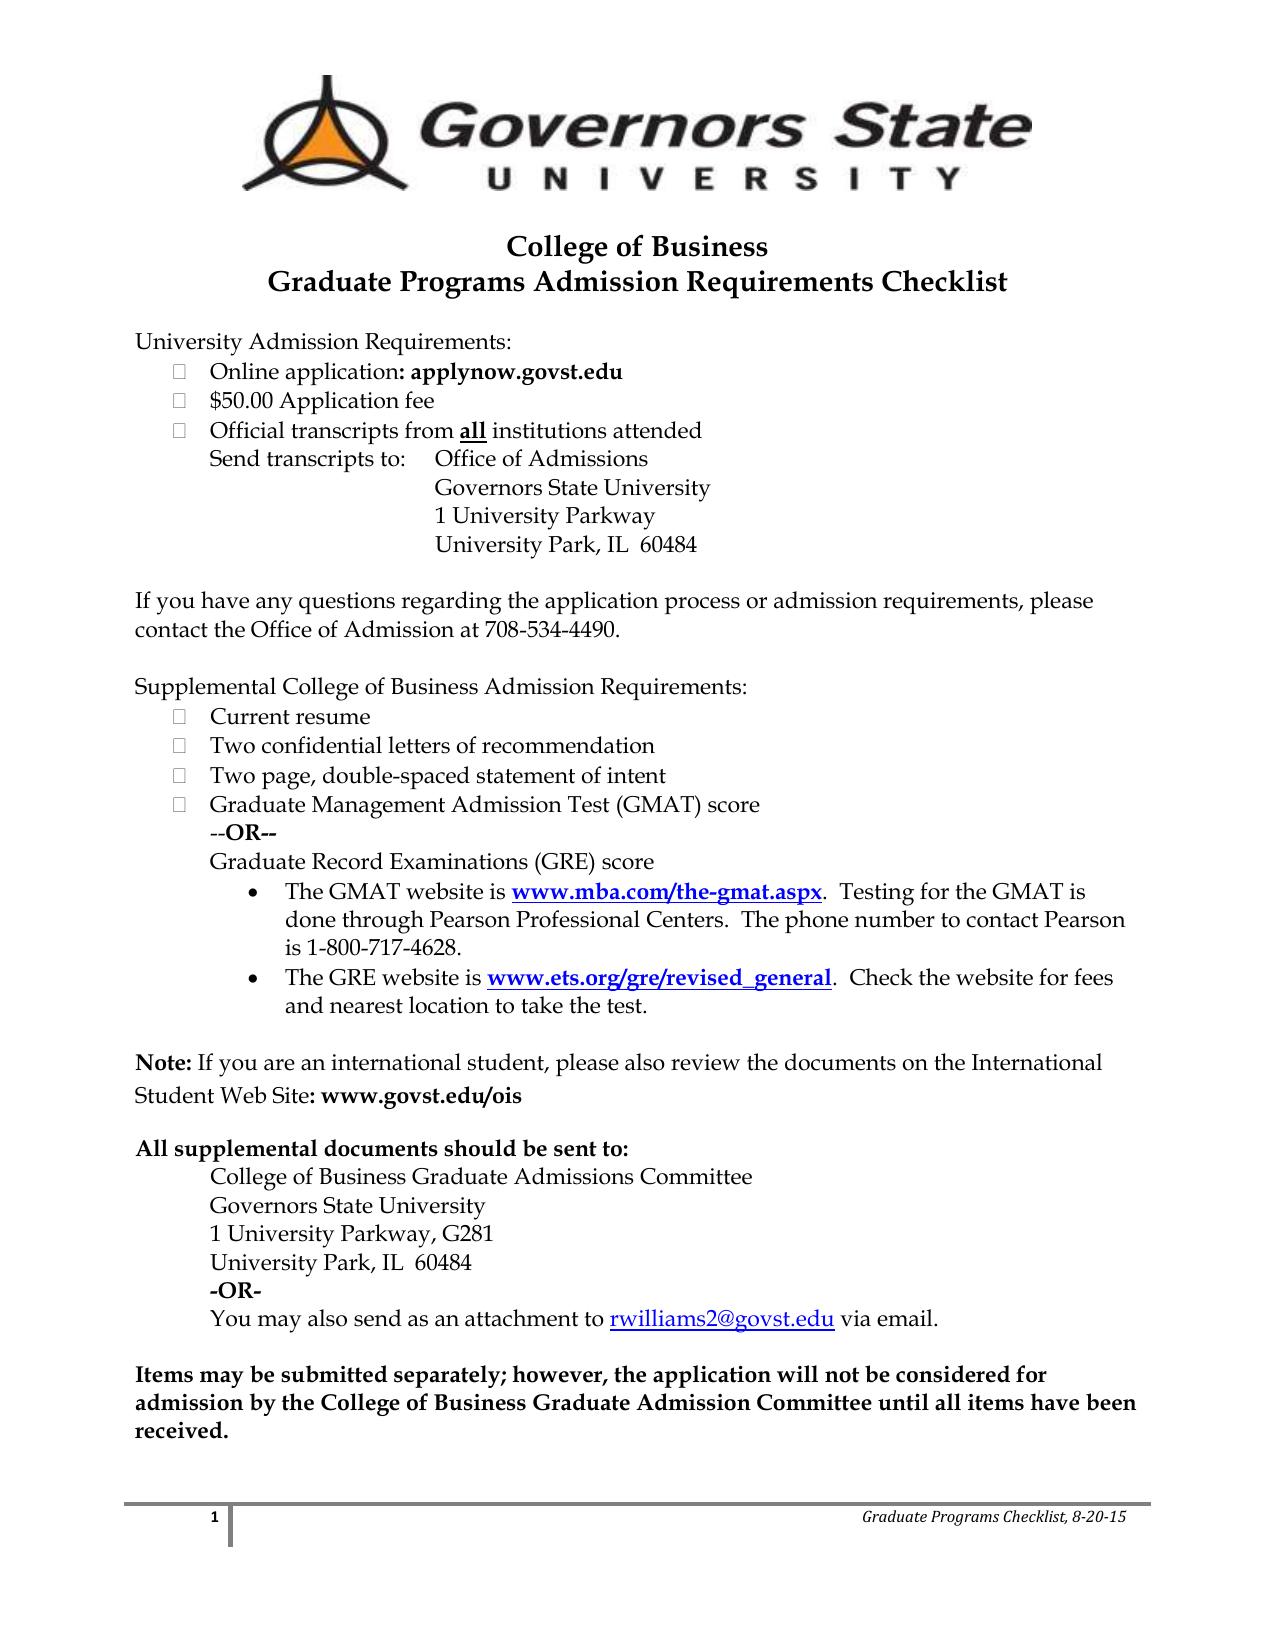 College of Business Graduate Programs Admission Requirements